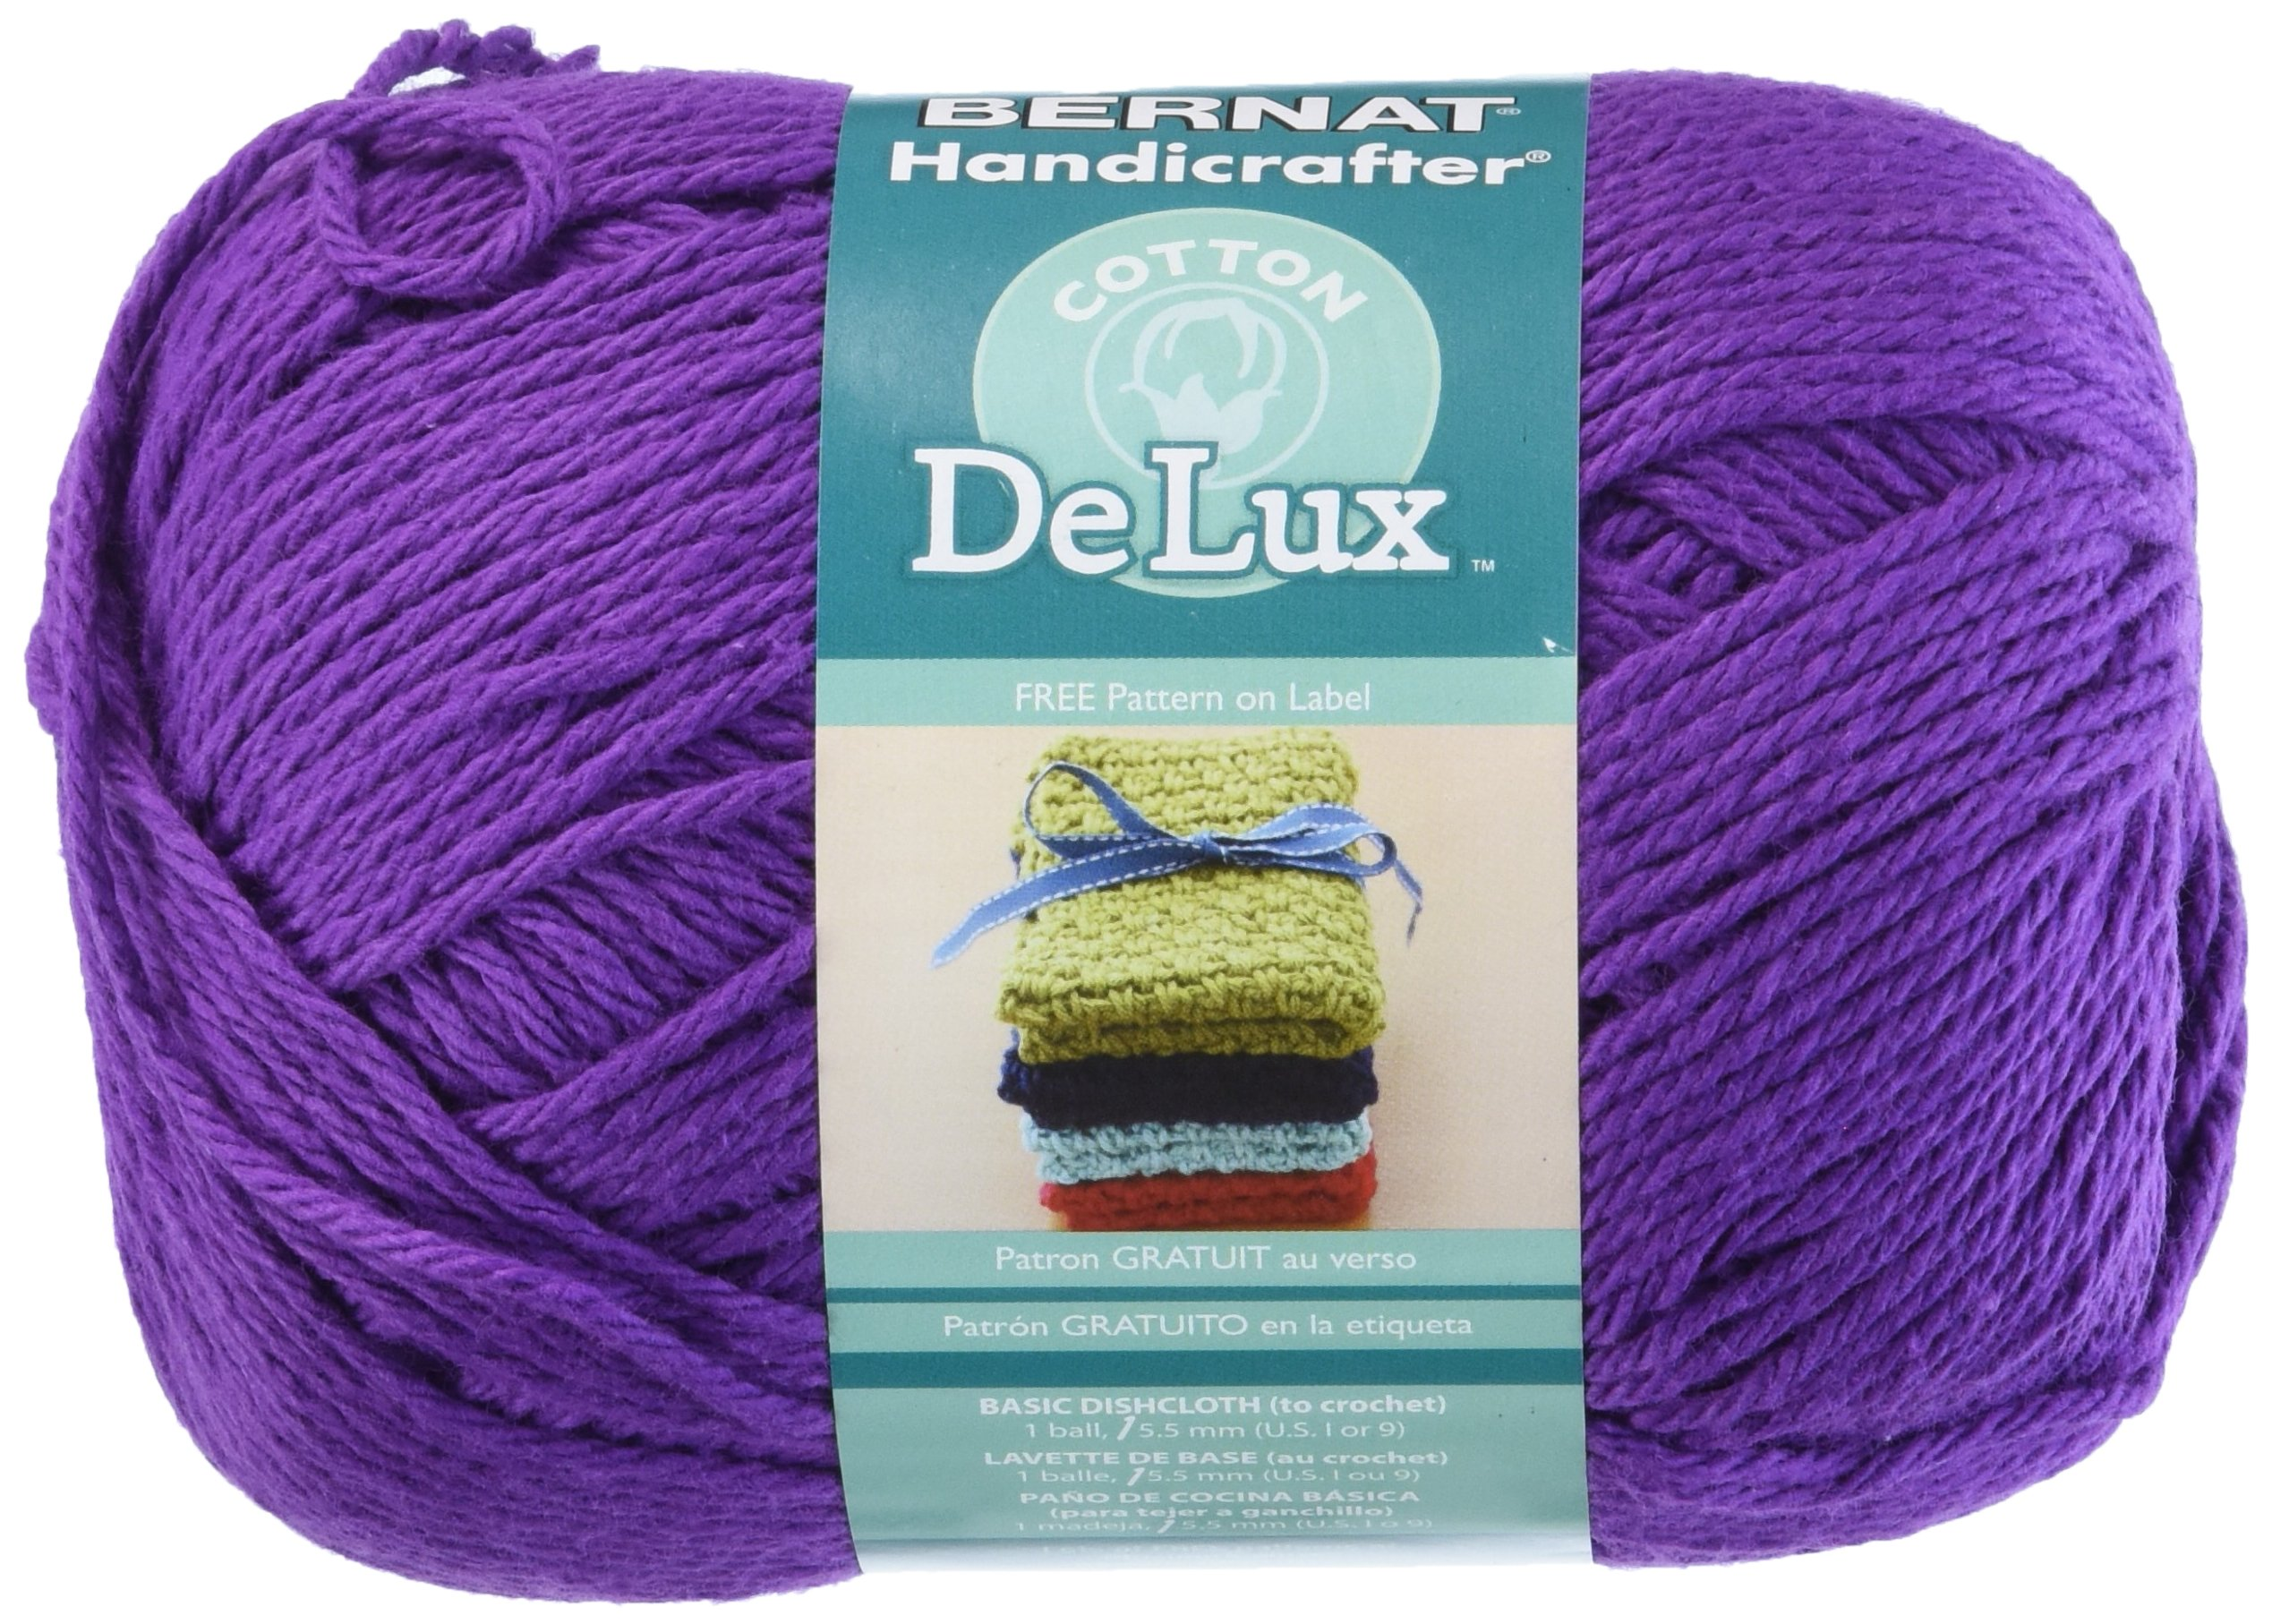 Spinrite Handicrafter Delux Cotton Yarn, Purple by Spinrite (Image #1)